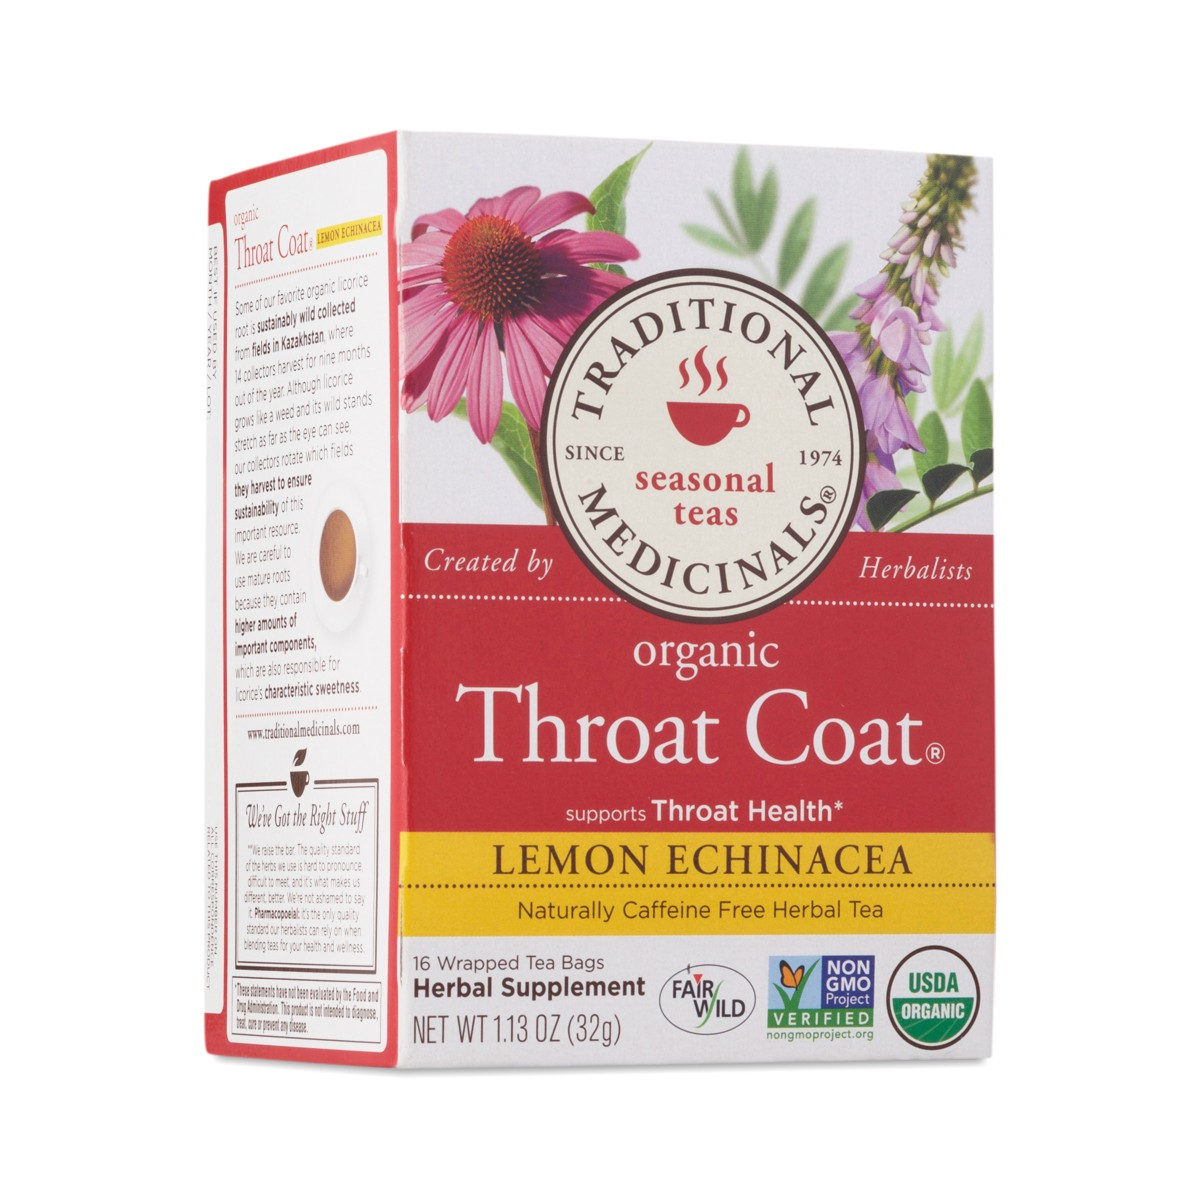 Traditional Medicinals Throat Coat 174 Lemon Echinacea Herbal